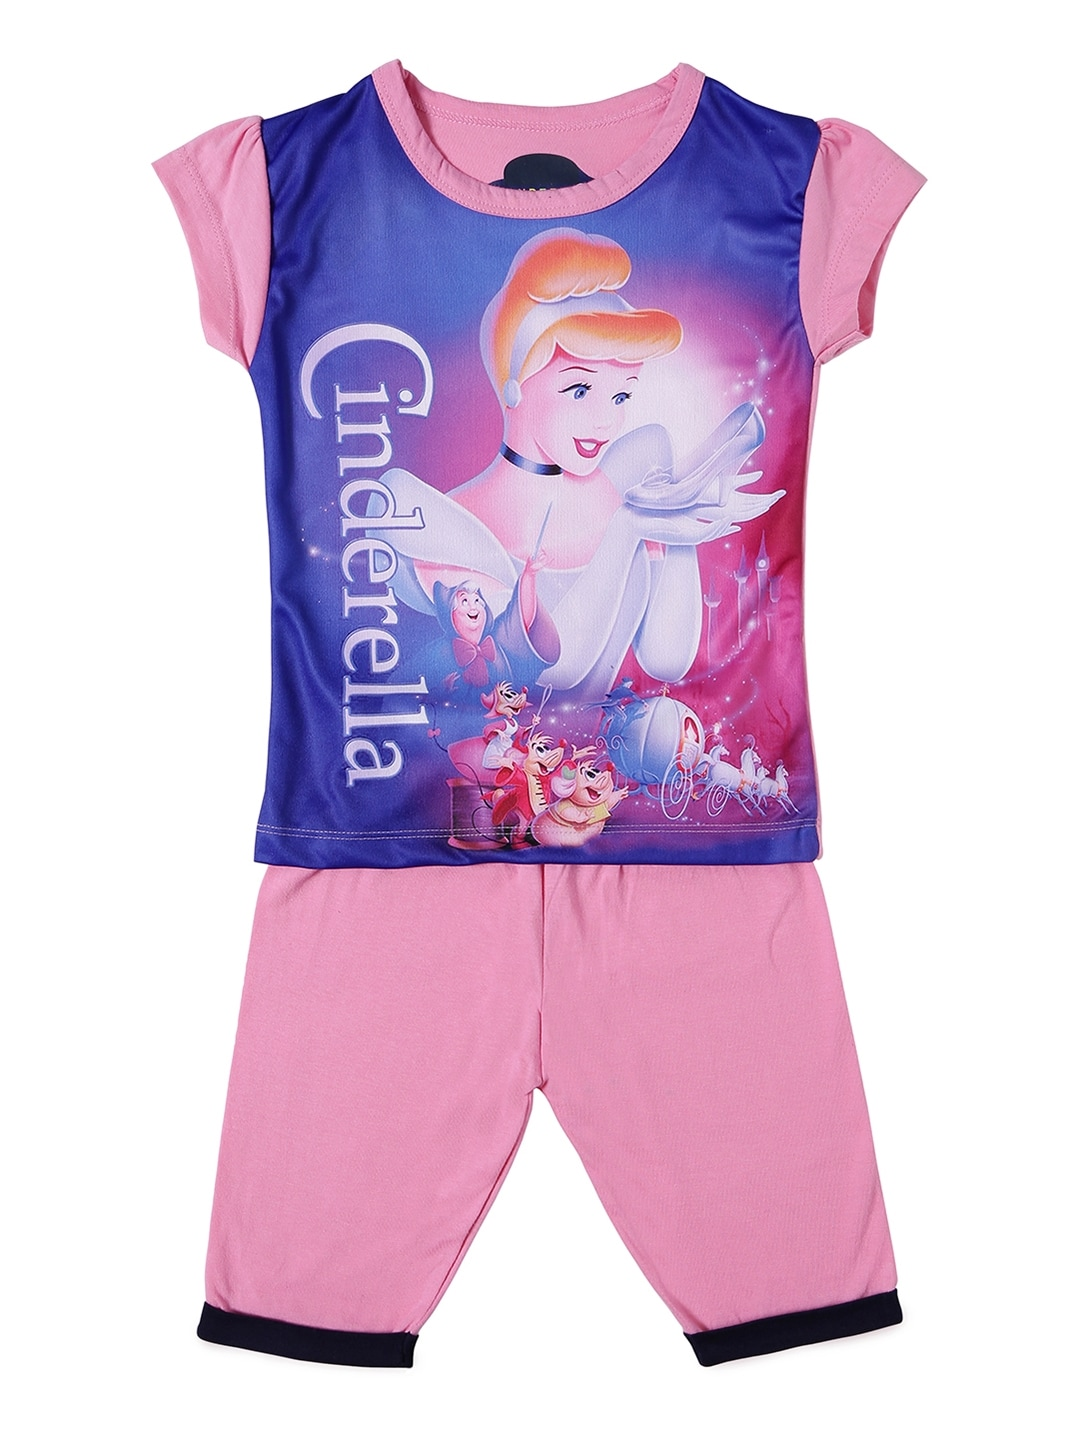 5bf0b8435ea5 Girls Clothes - Buy Girls Clothing Online in India